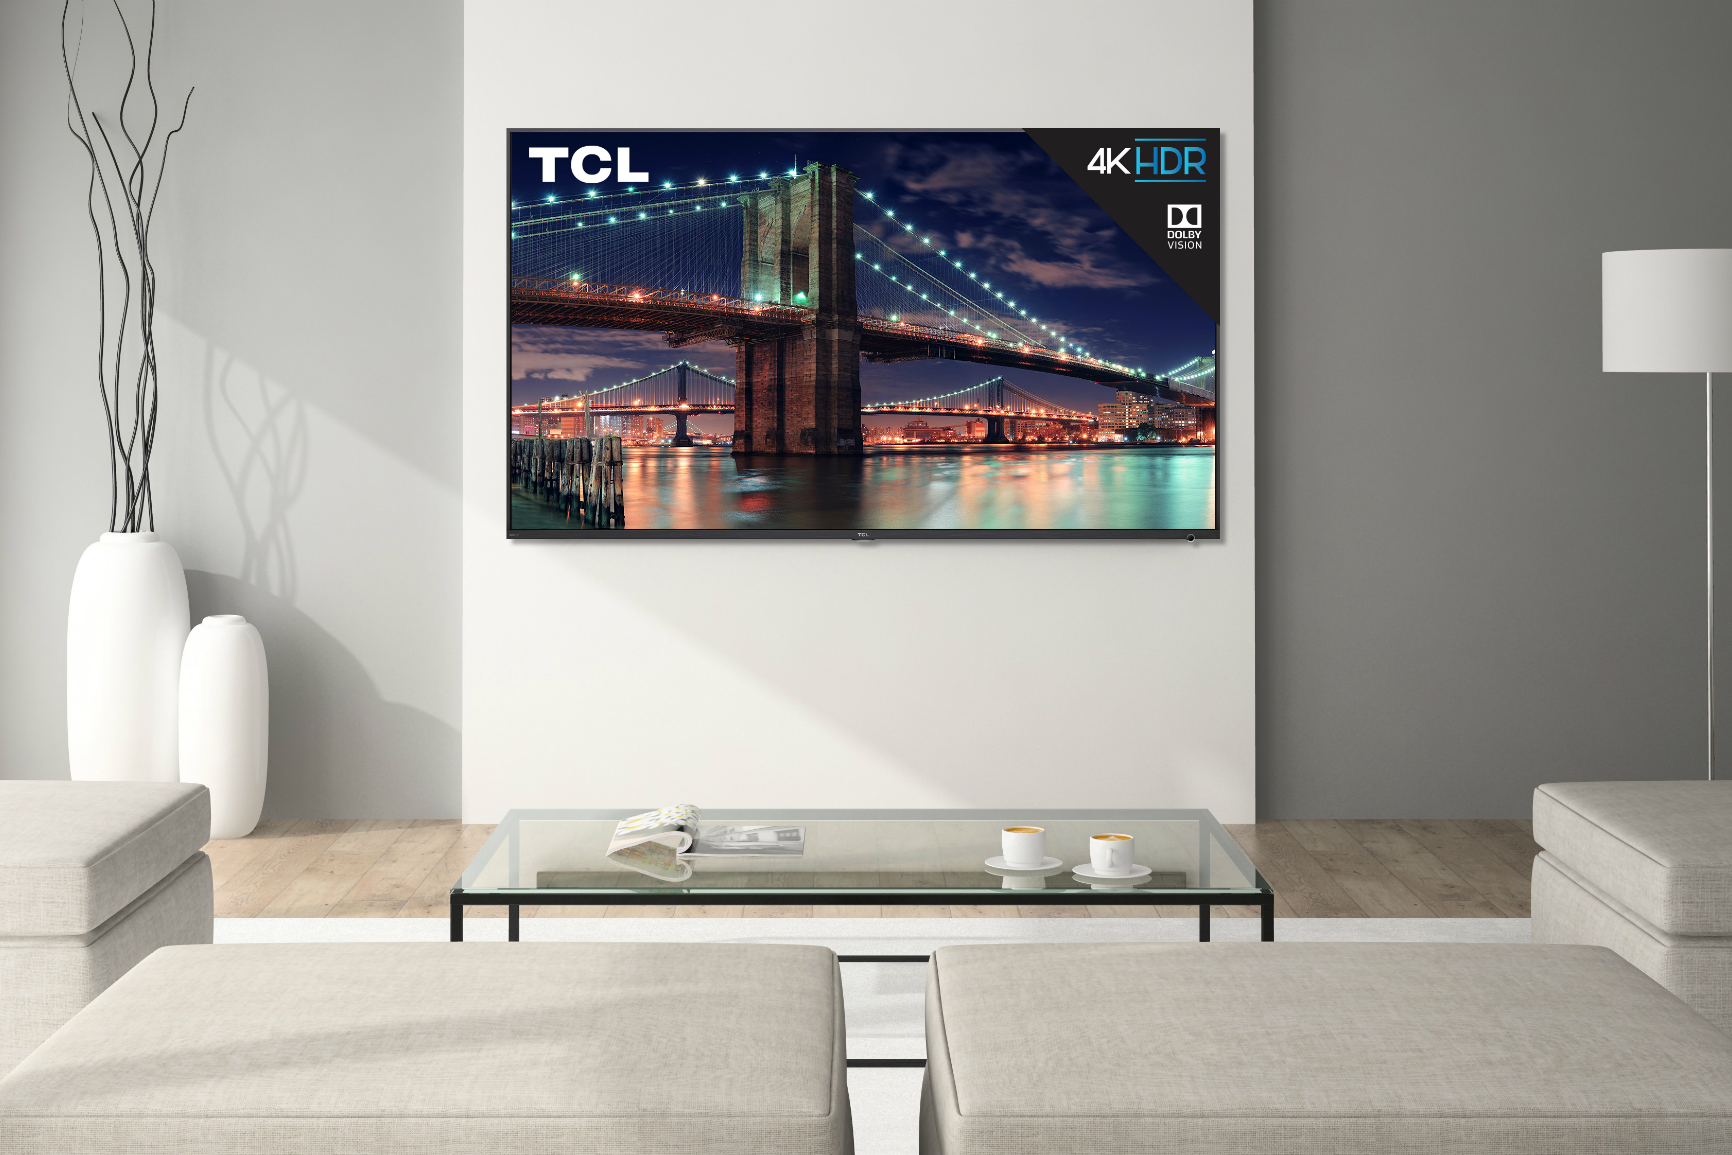 Drool over Samsung's 'The Wall,' but buy the TCL 6-Series ...